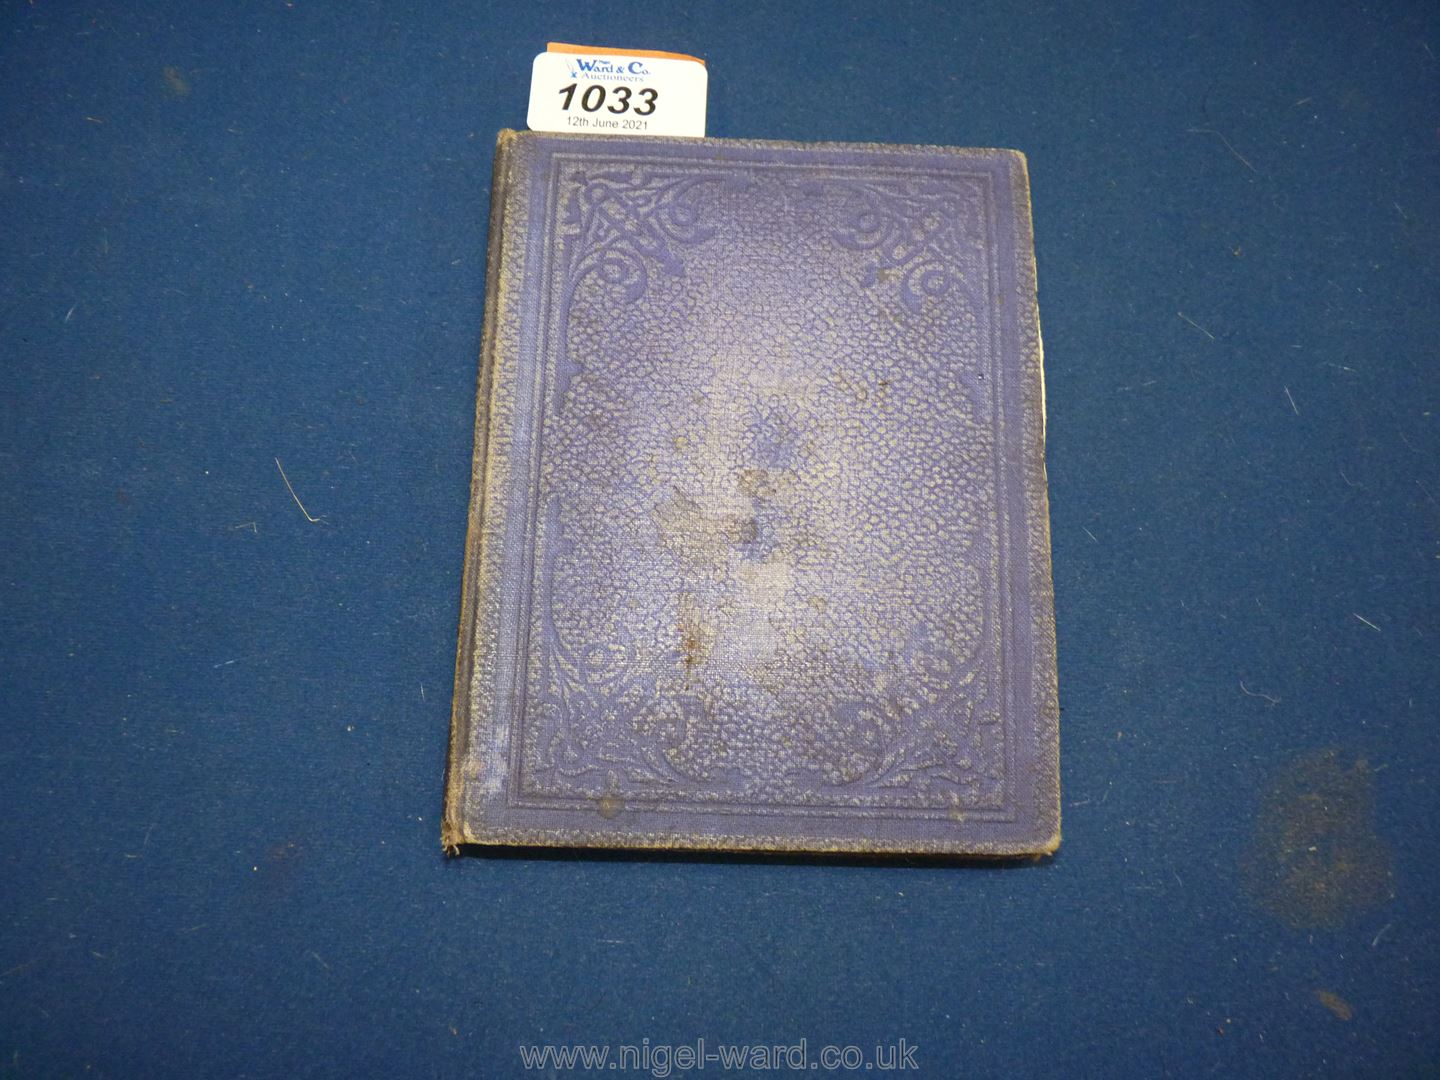 An interesting album of Coats of Arms, ciphers etc including Queen Victoria's family, nobility, - Image 3 of 7